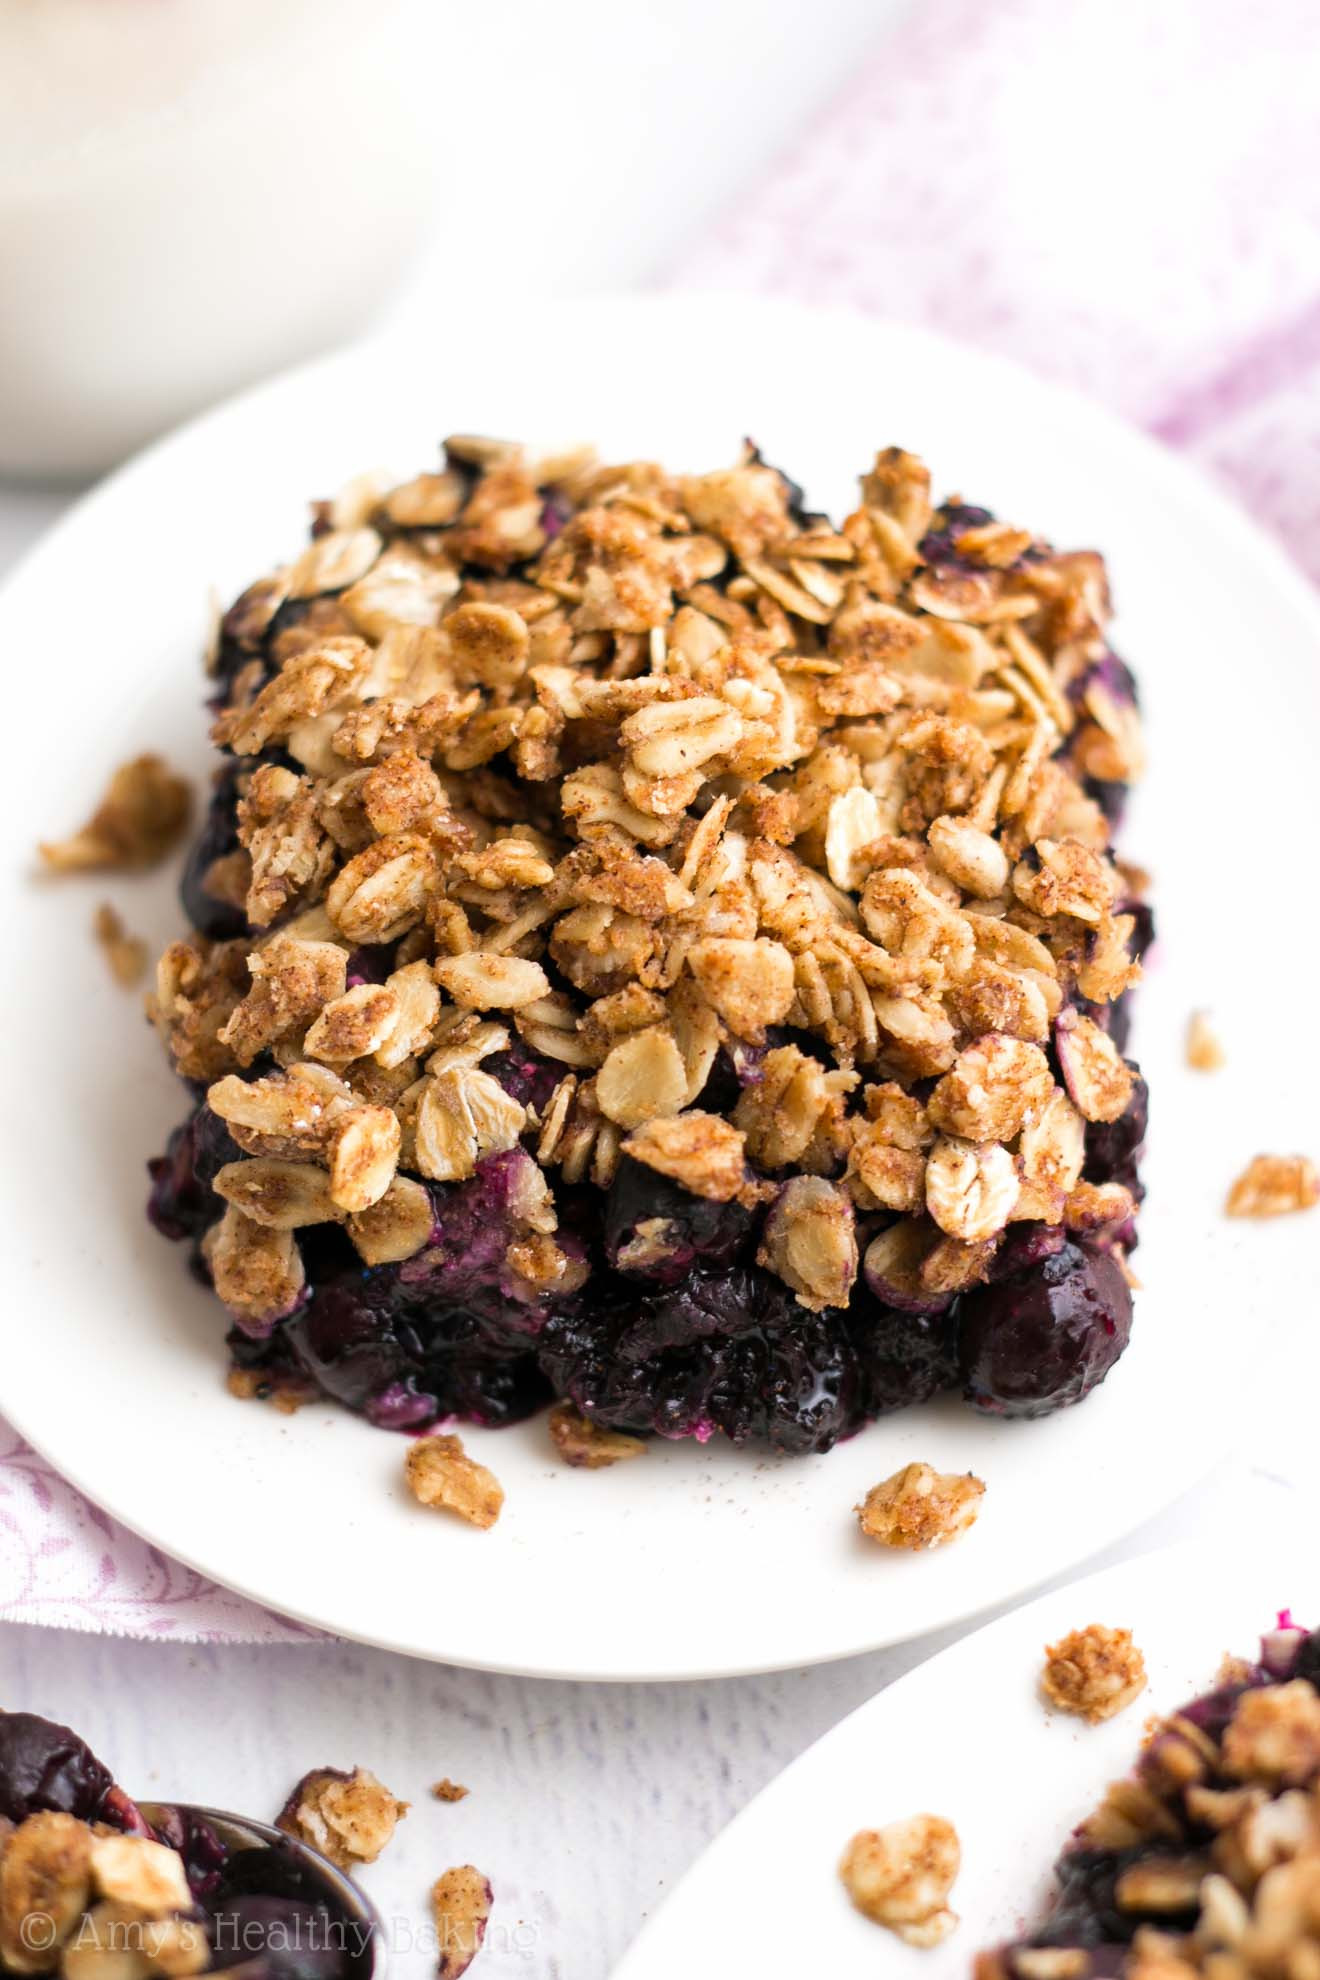 Healthy Blueberry Desserts  The Ultimate Healthy Blueberry Crumble Recipe Video